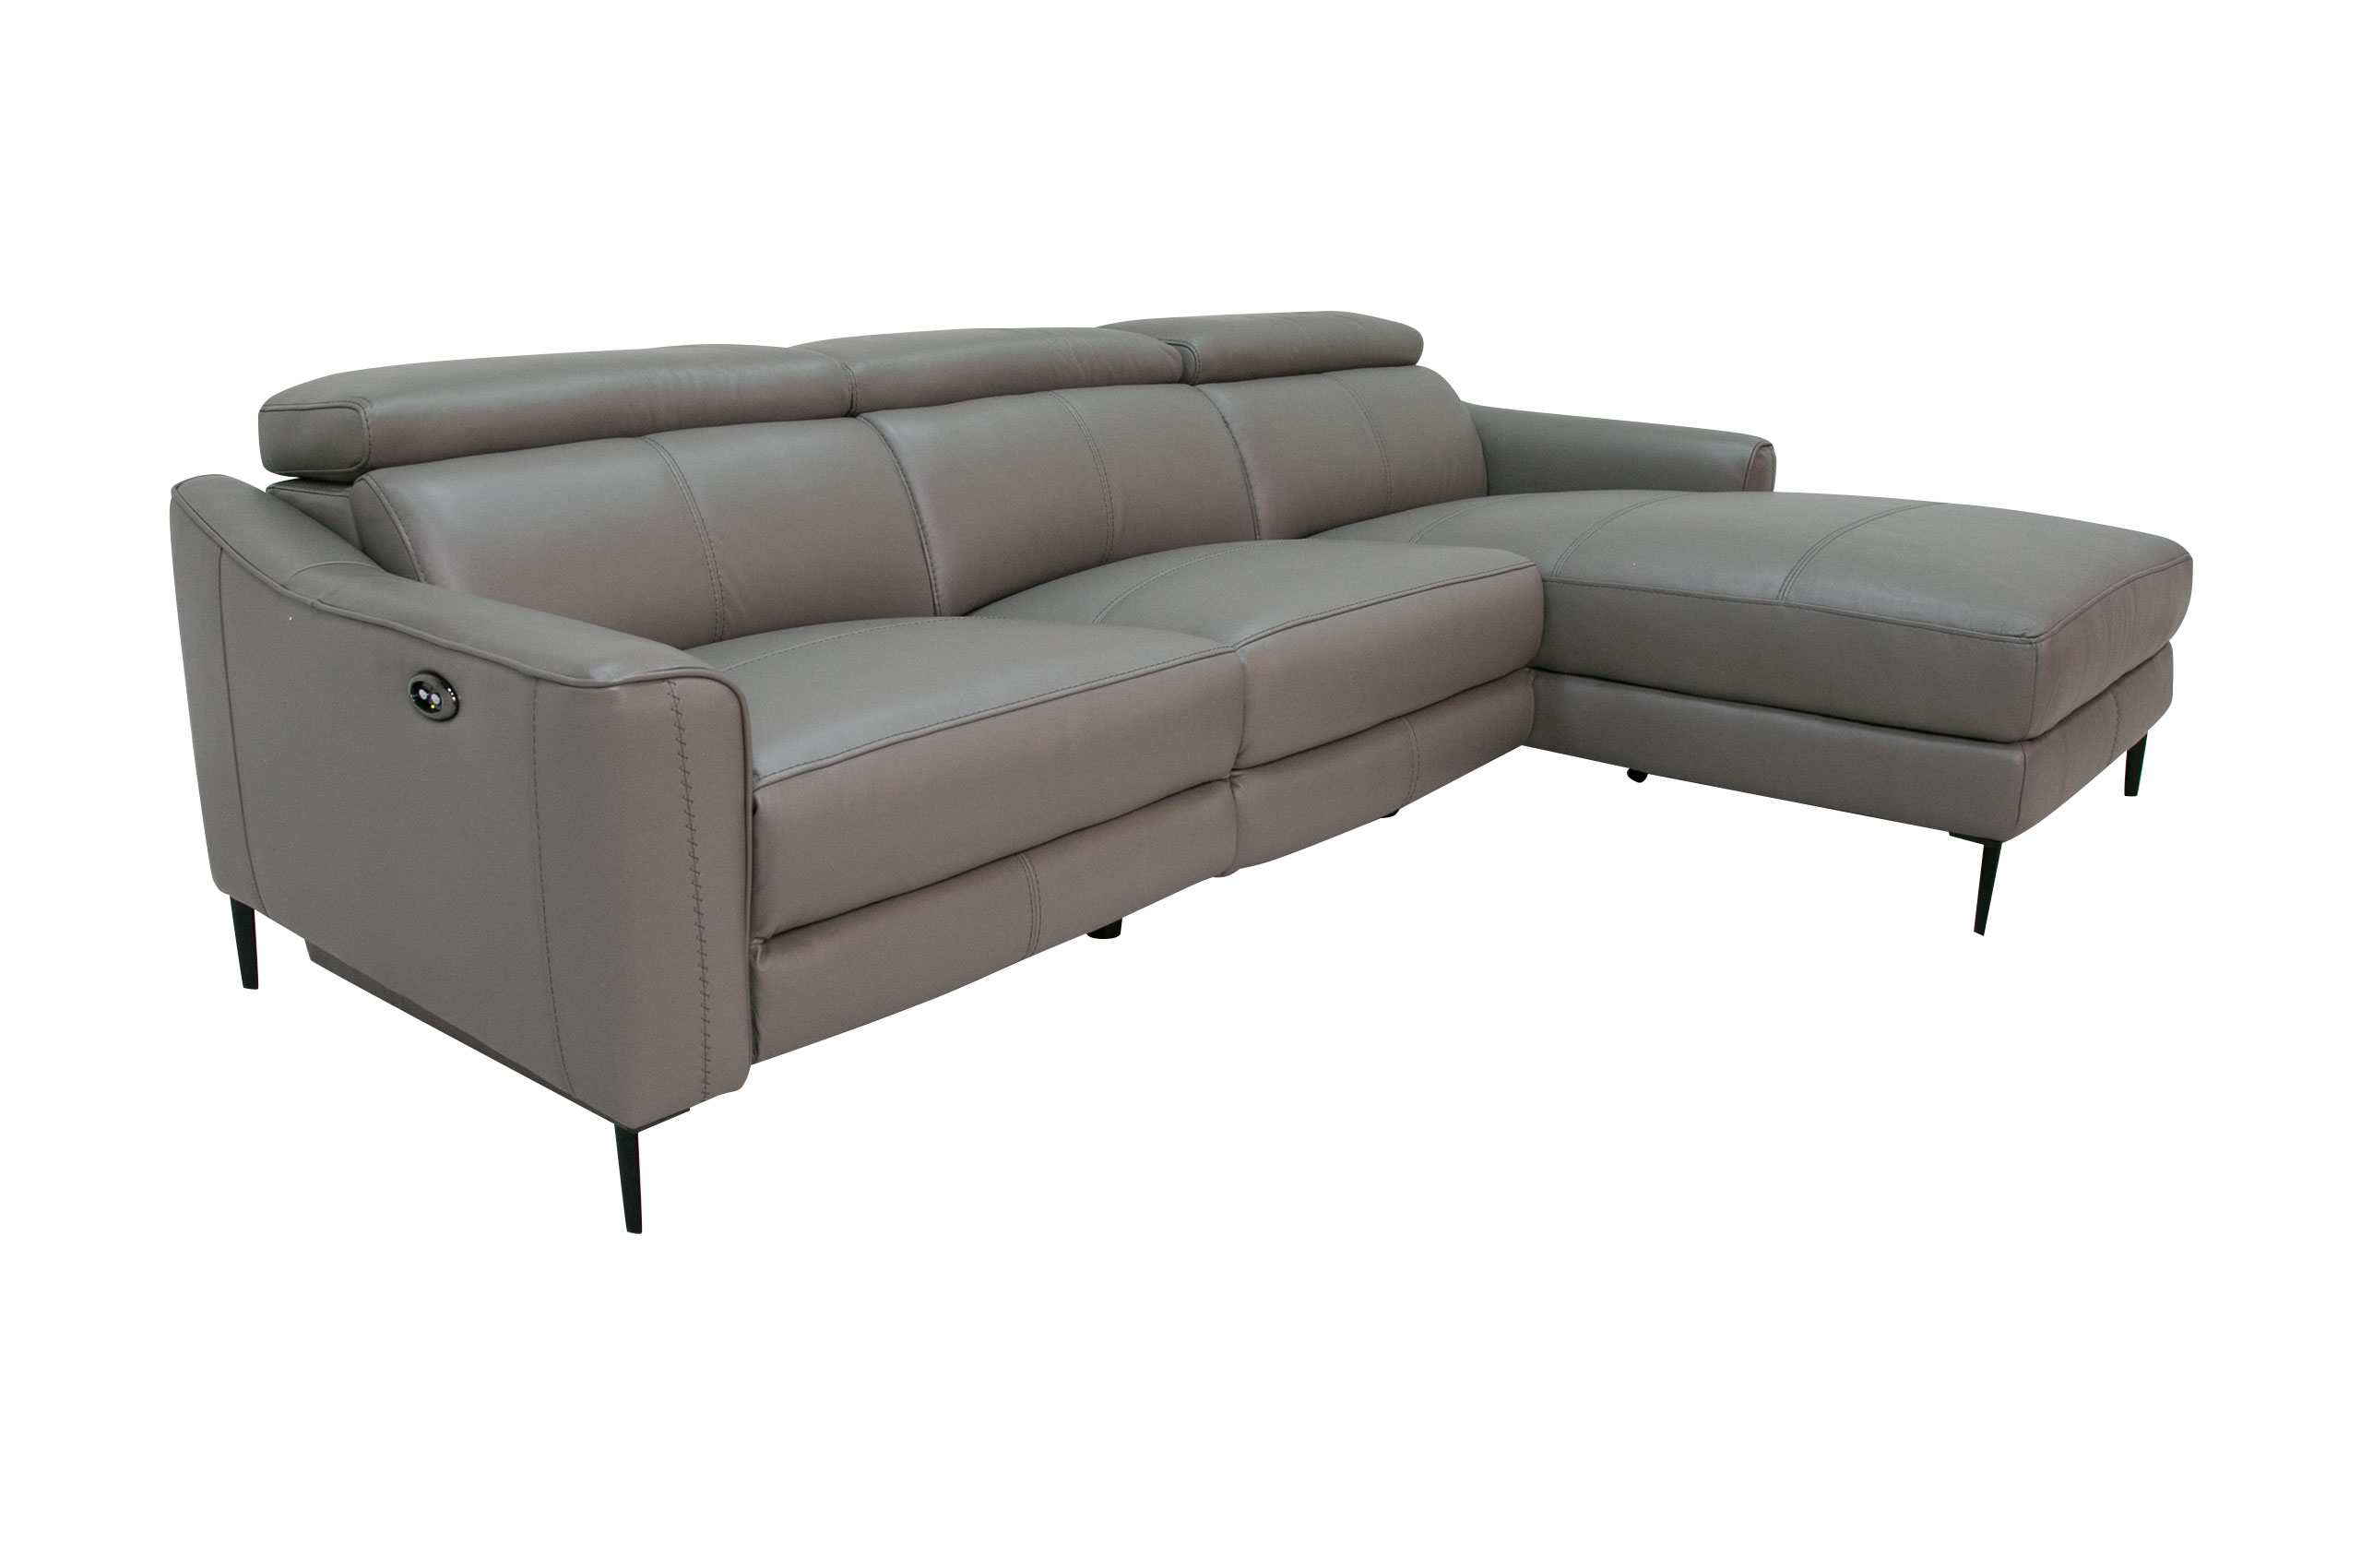 Komojo Sofa L-Form Queen rechts - mit Relax - Taupe ...